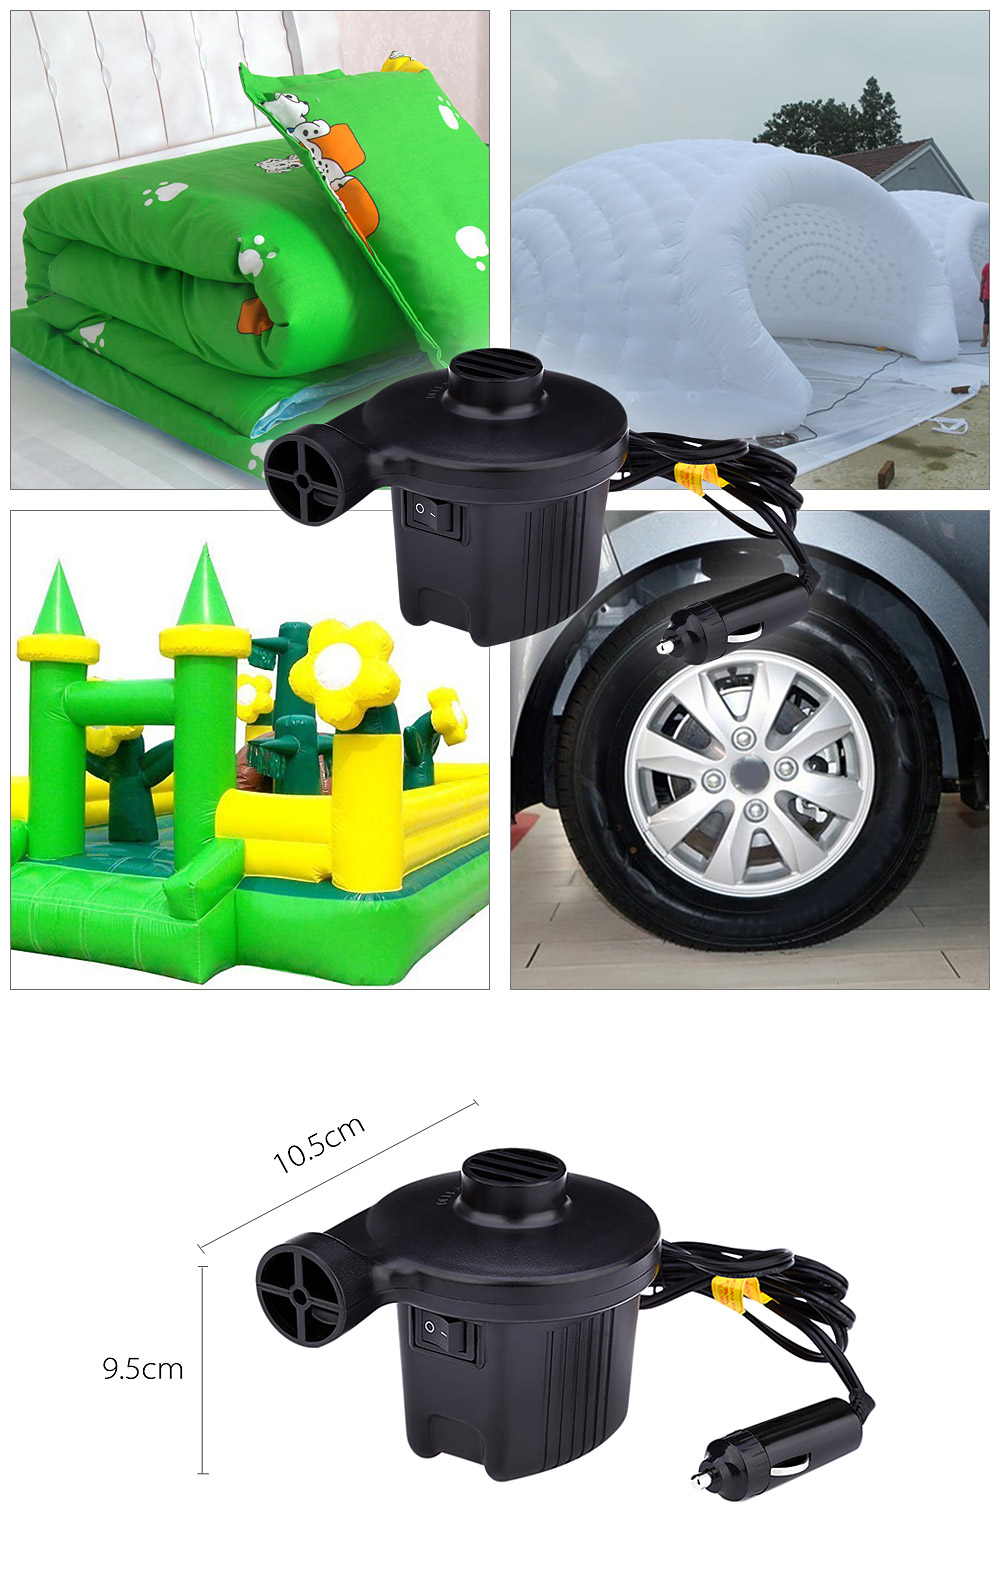 Household Car Electric Air Pump 60W AC DC Power Supply Inflation for Camping Airbed Boat